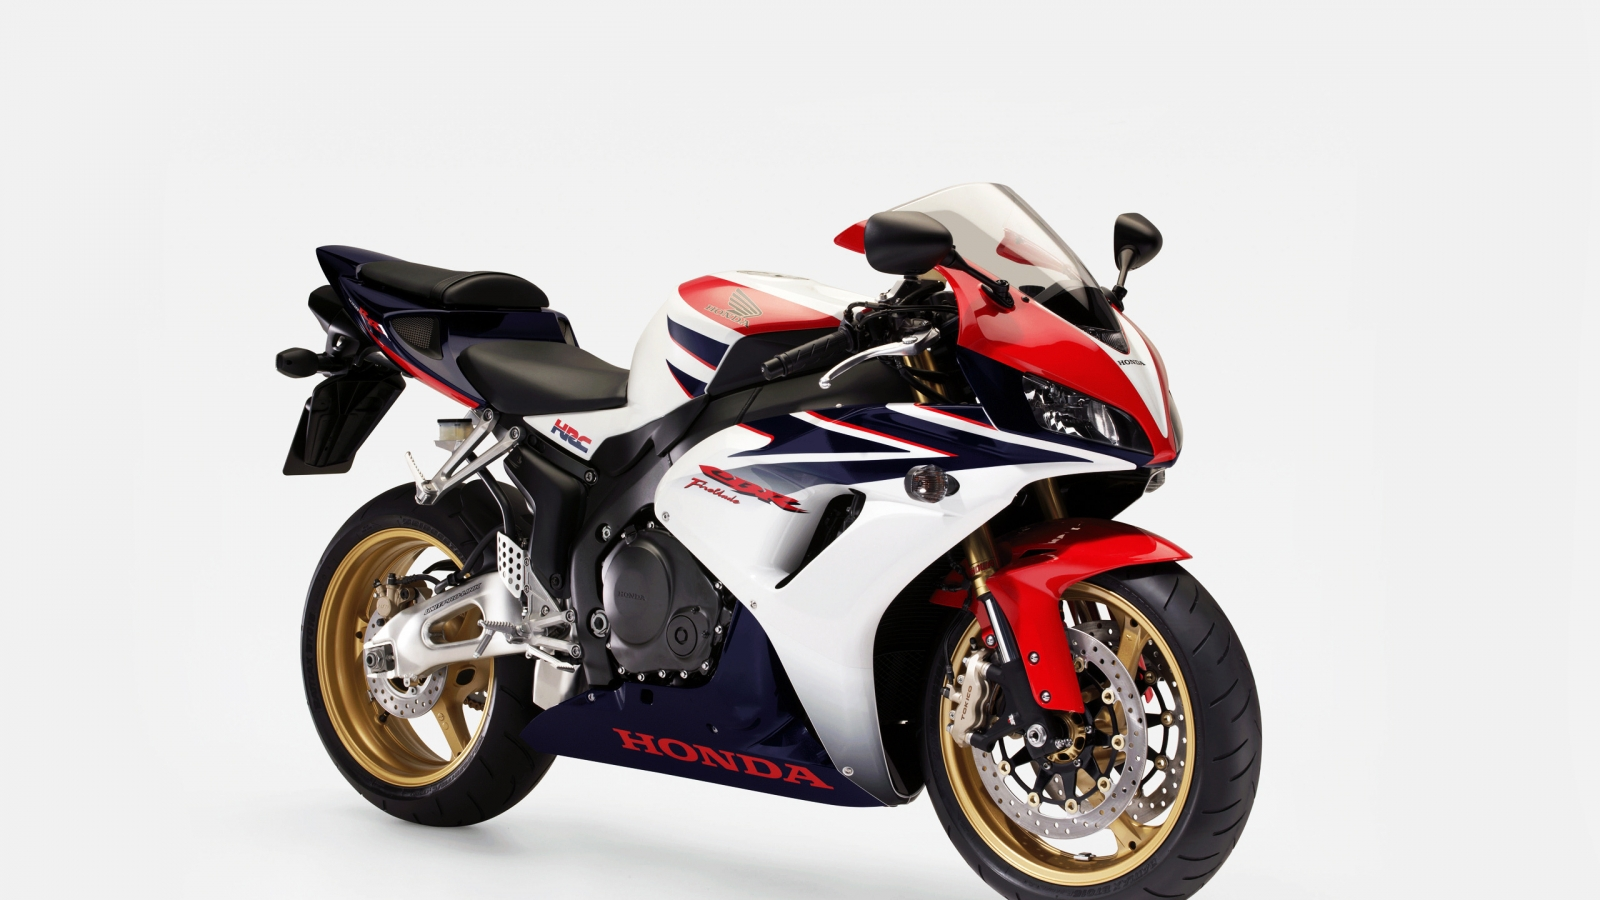 Honda CBR 1000RR for 1600 x 900 HDTV resolution